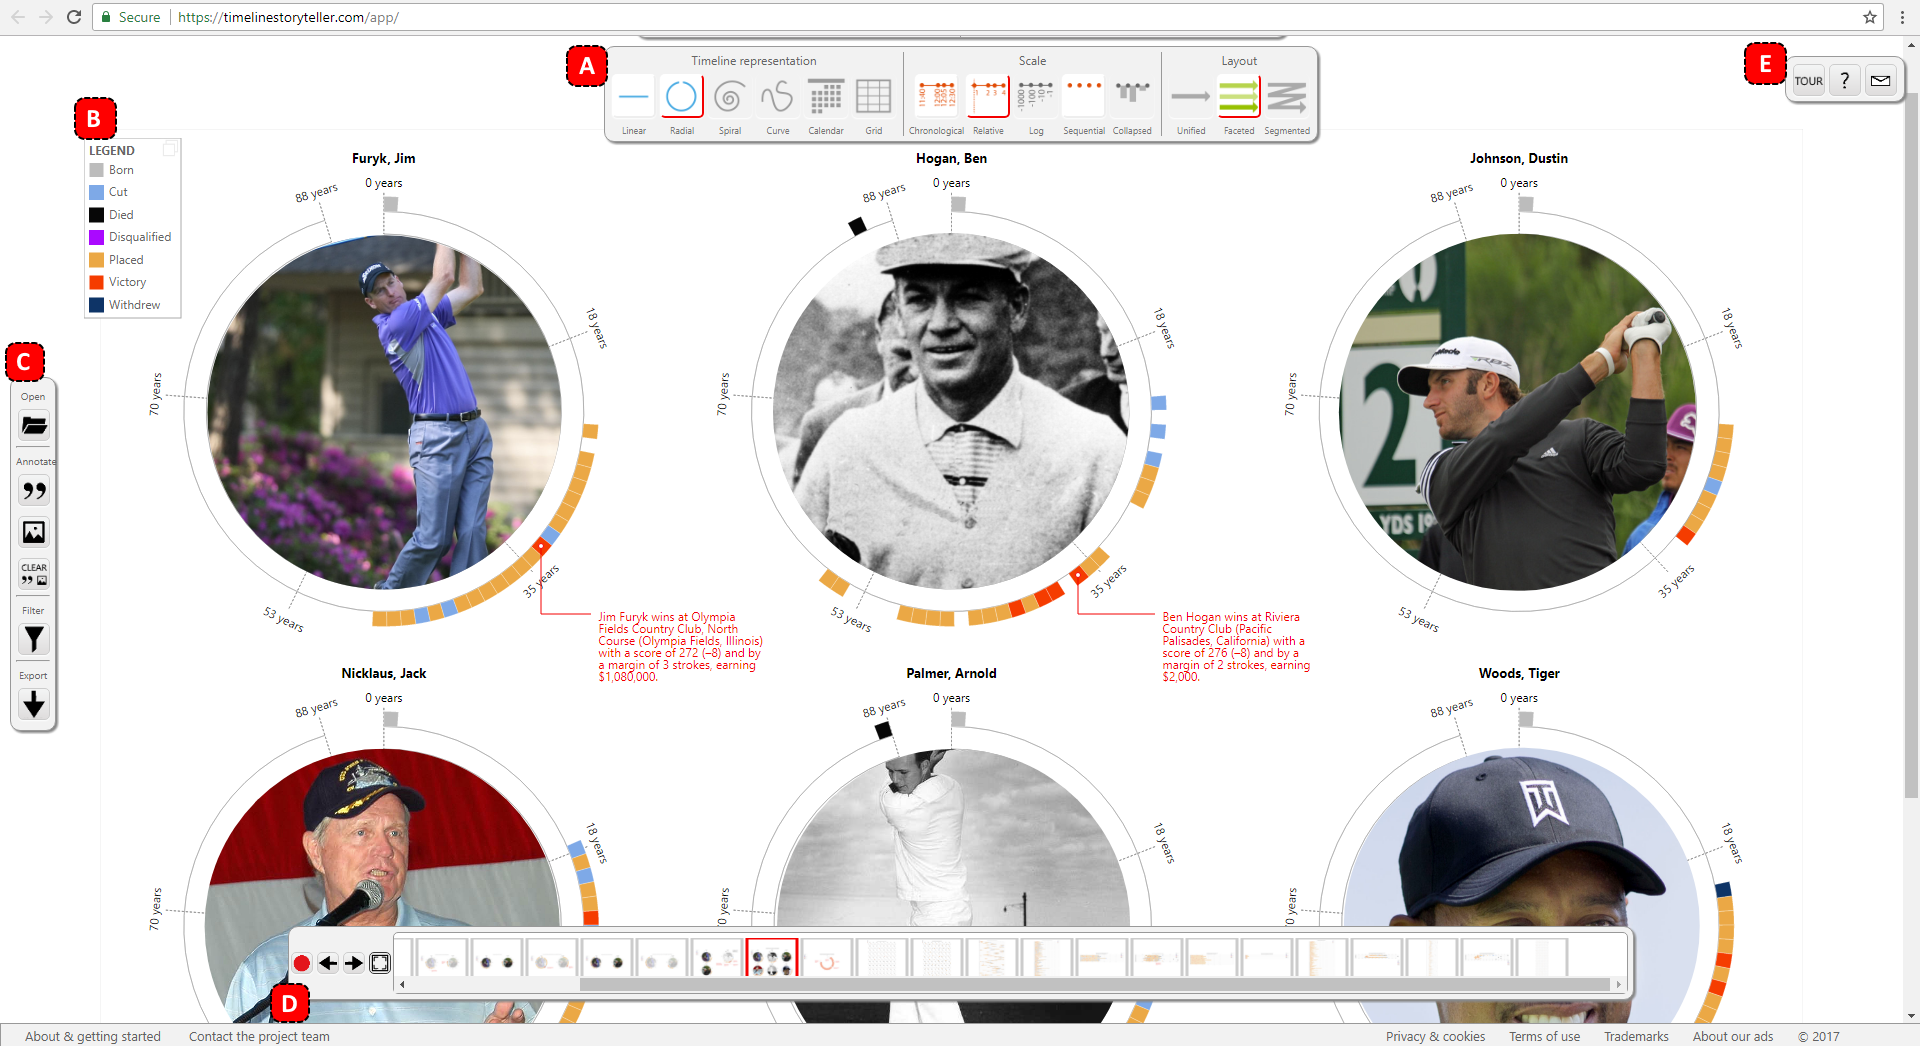 The interface of Timeline Storyteller, where the timeline canvas spans the entire browser window. Interface components include: (A) toggles for alternative timeline representations, scales, and layouts; (B) a movable event legend; (C) widgets for loading data, annotating the canvas with captions and images, filtering and highlighting events, and exporting content; (D) scene recording and playback controls along with a scene list; and (E) tutorial and help widgets. This example displays a scene from a story about the performance record of professional golfers at the US Open golf tournament throughout their careers (see the interactive story at https://aka.ms/timelinestoryteller-golf-story). Golfer images: Wikimedia (CC).